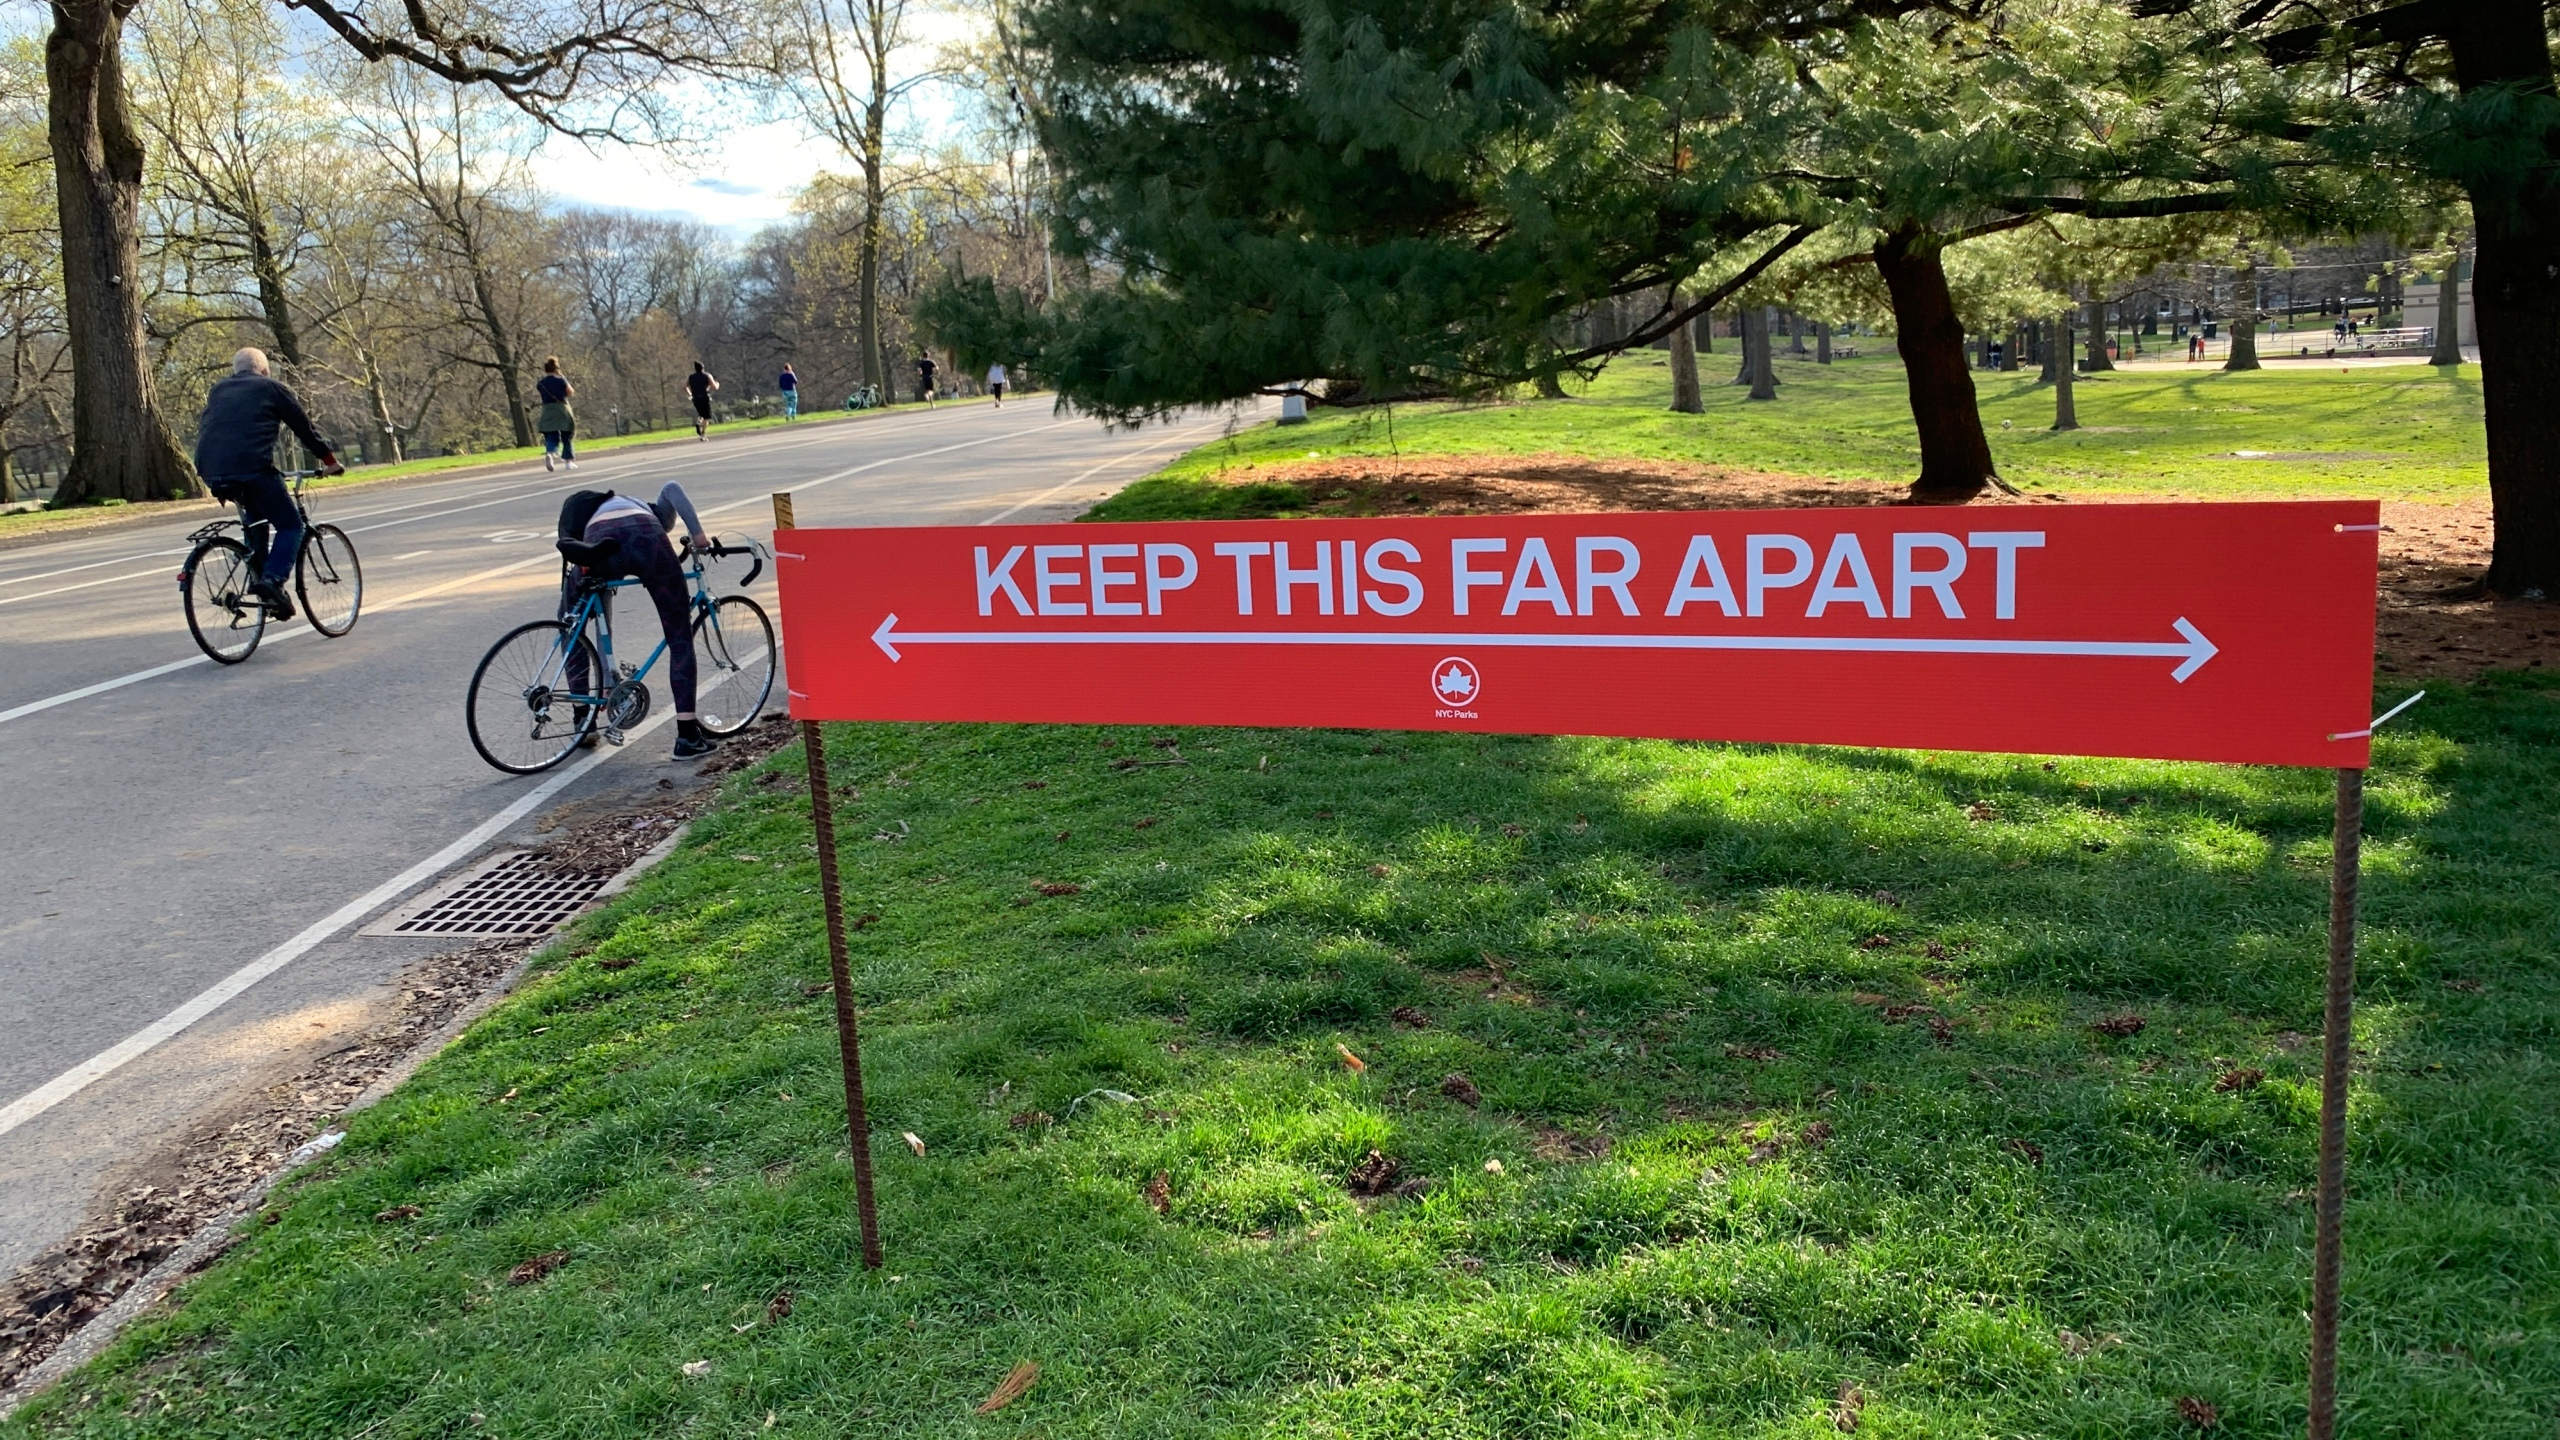 Signage urging social distancing is seen in Prospect Park in the Brooklyn borough of New York, Wednesday, April 8, 2020.